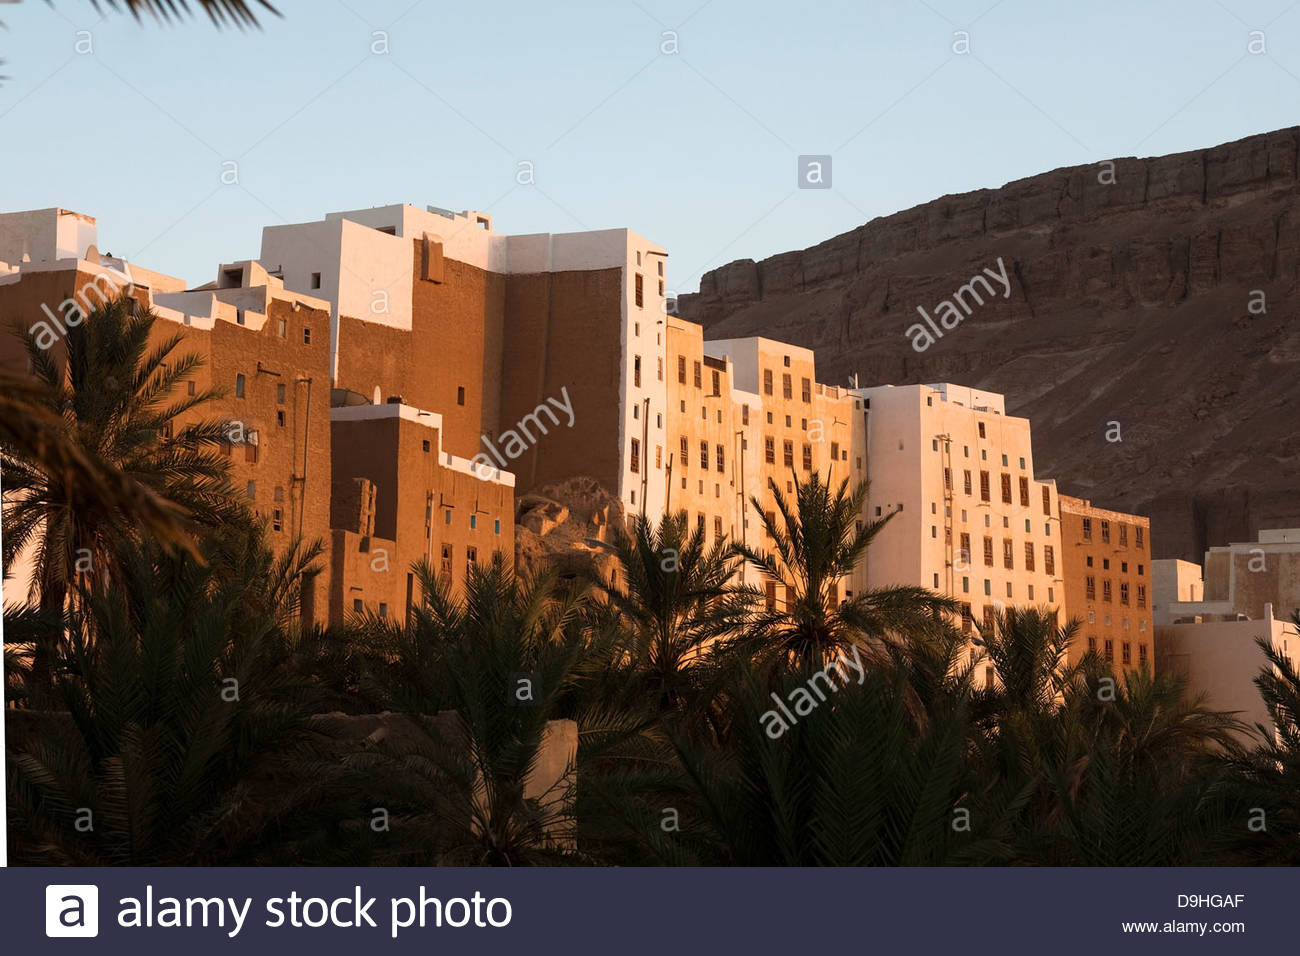 Low angle view of apartments in a city, Shibam, Hadhramaut, Yemen - Stock Image